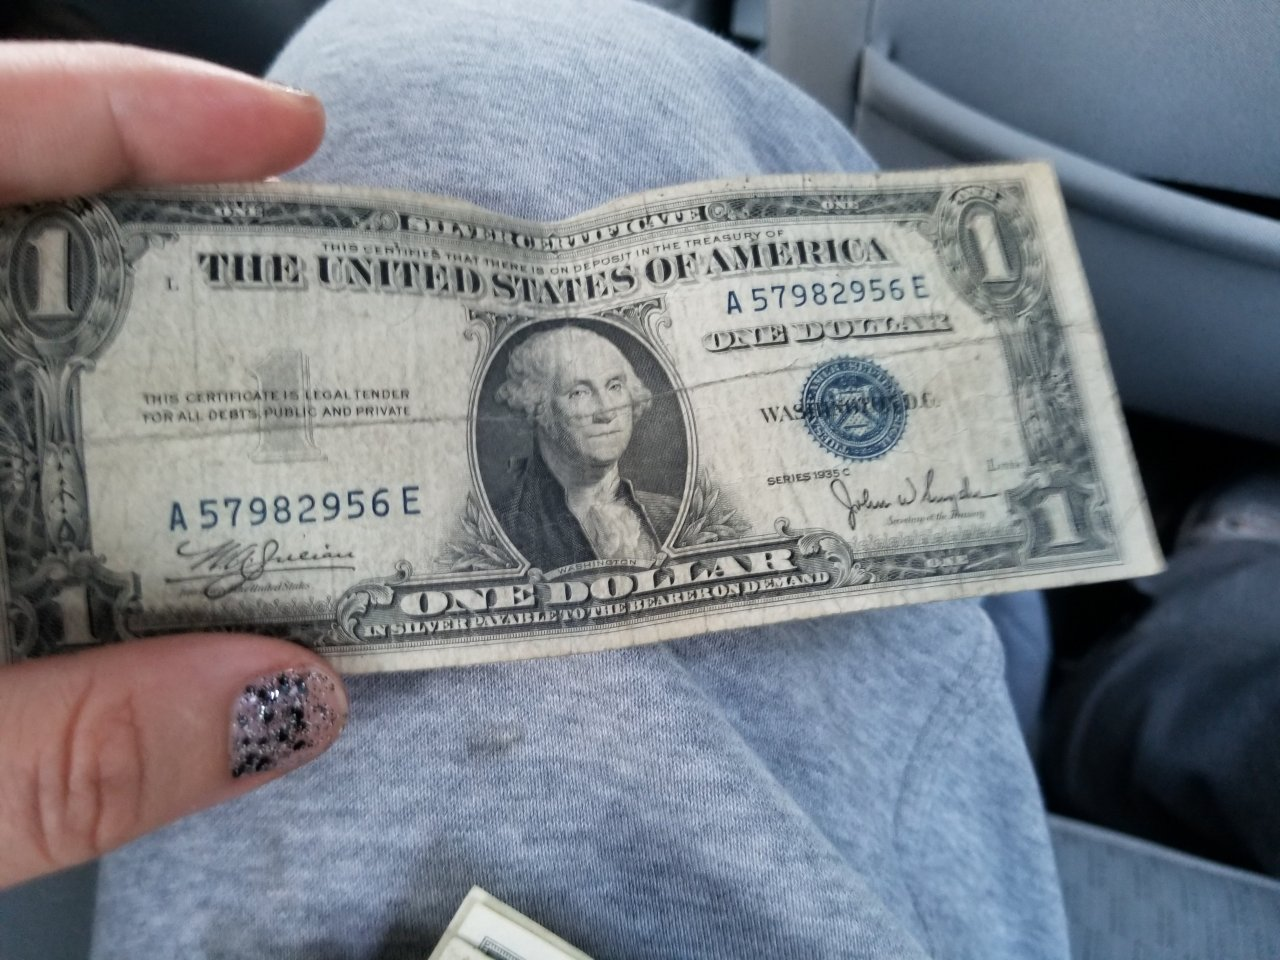 How much is a 1935 c series blue print dollar bill worth being but up either way for him but wanna give him something one day worth something u know dont have much and know nothing about money collections xflitez Images